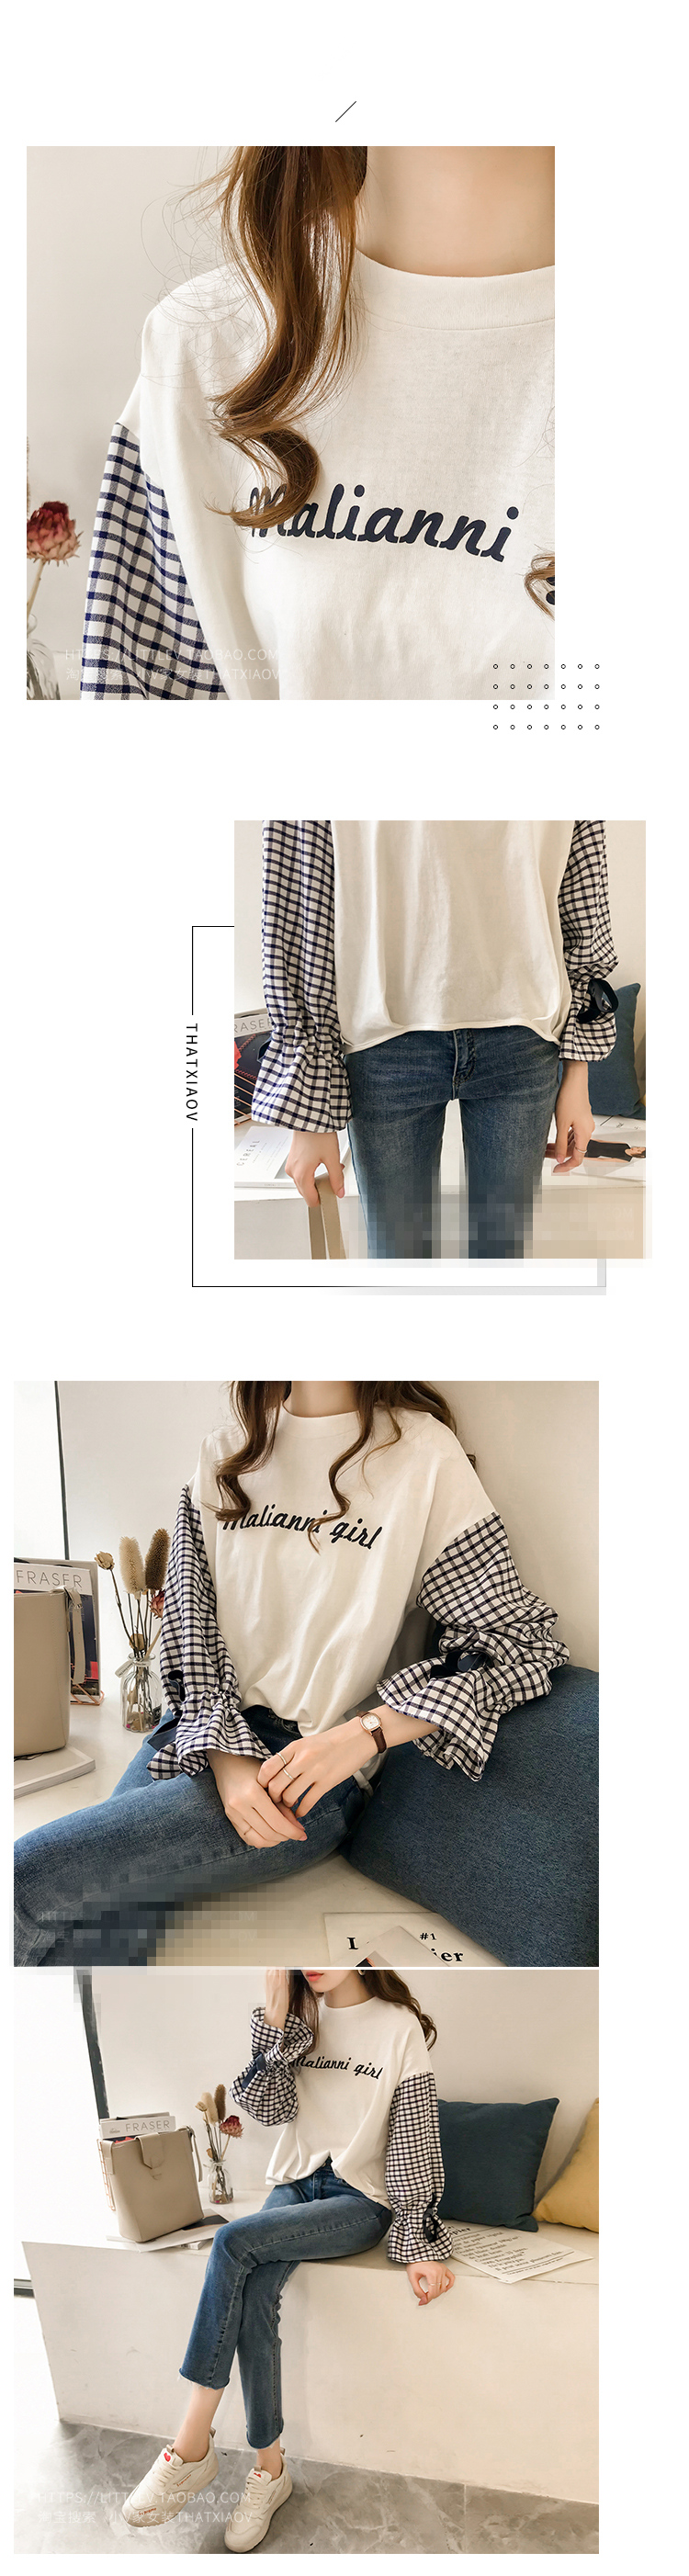 M-4xl Plus Size Cotton Casual T-shirts Women Plaid Patchwork Flare Sleeve O-neck Tshirts Harajuku Fake Two Piece Loose Tees Tops 14 Online shopping Bangladesh